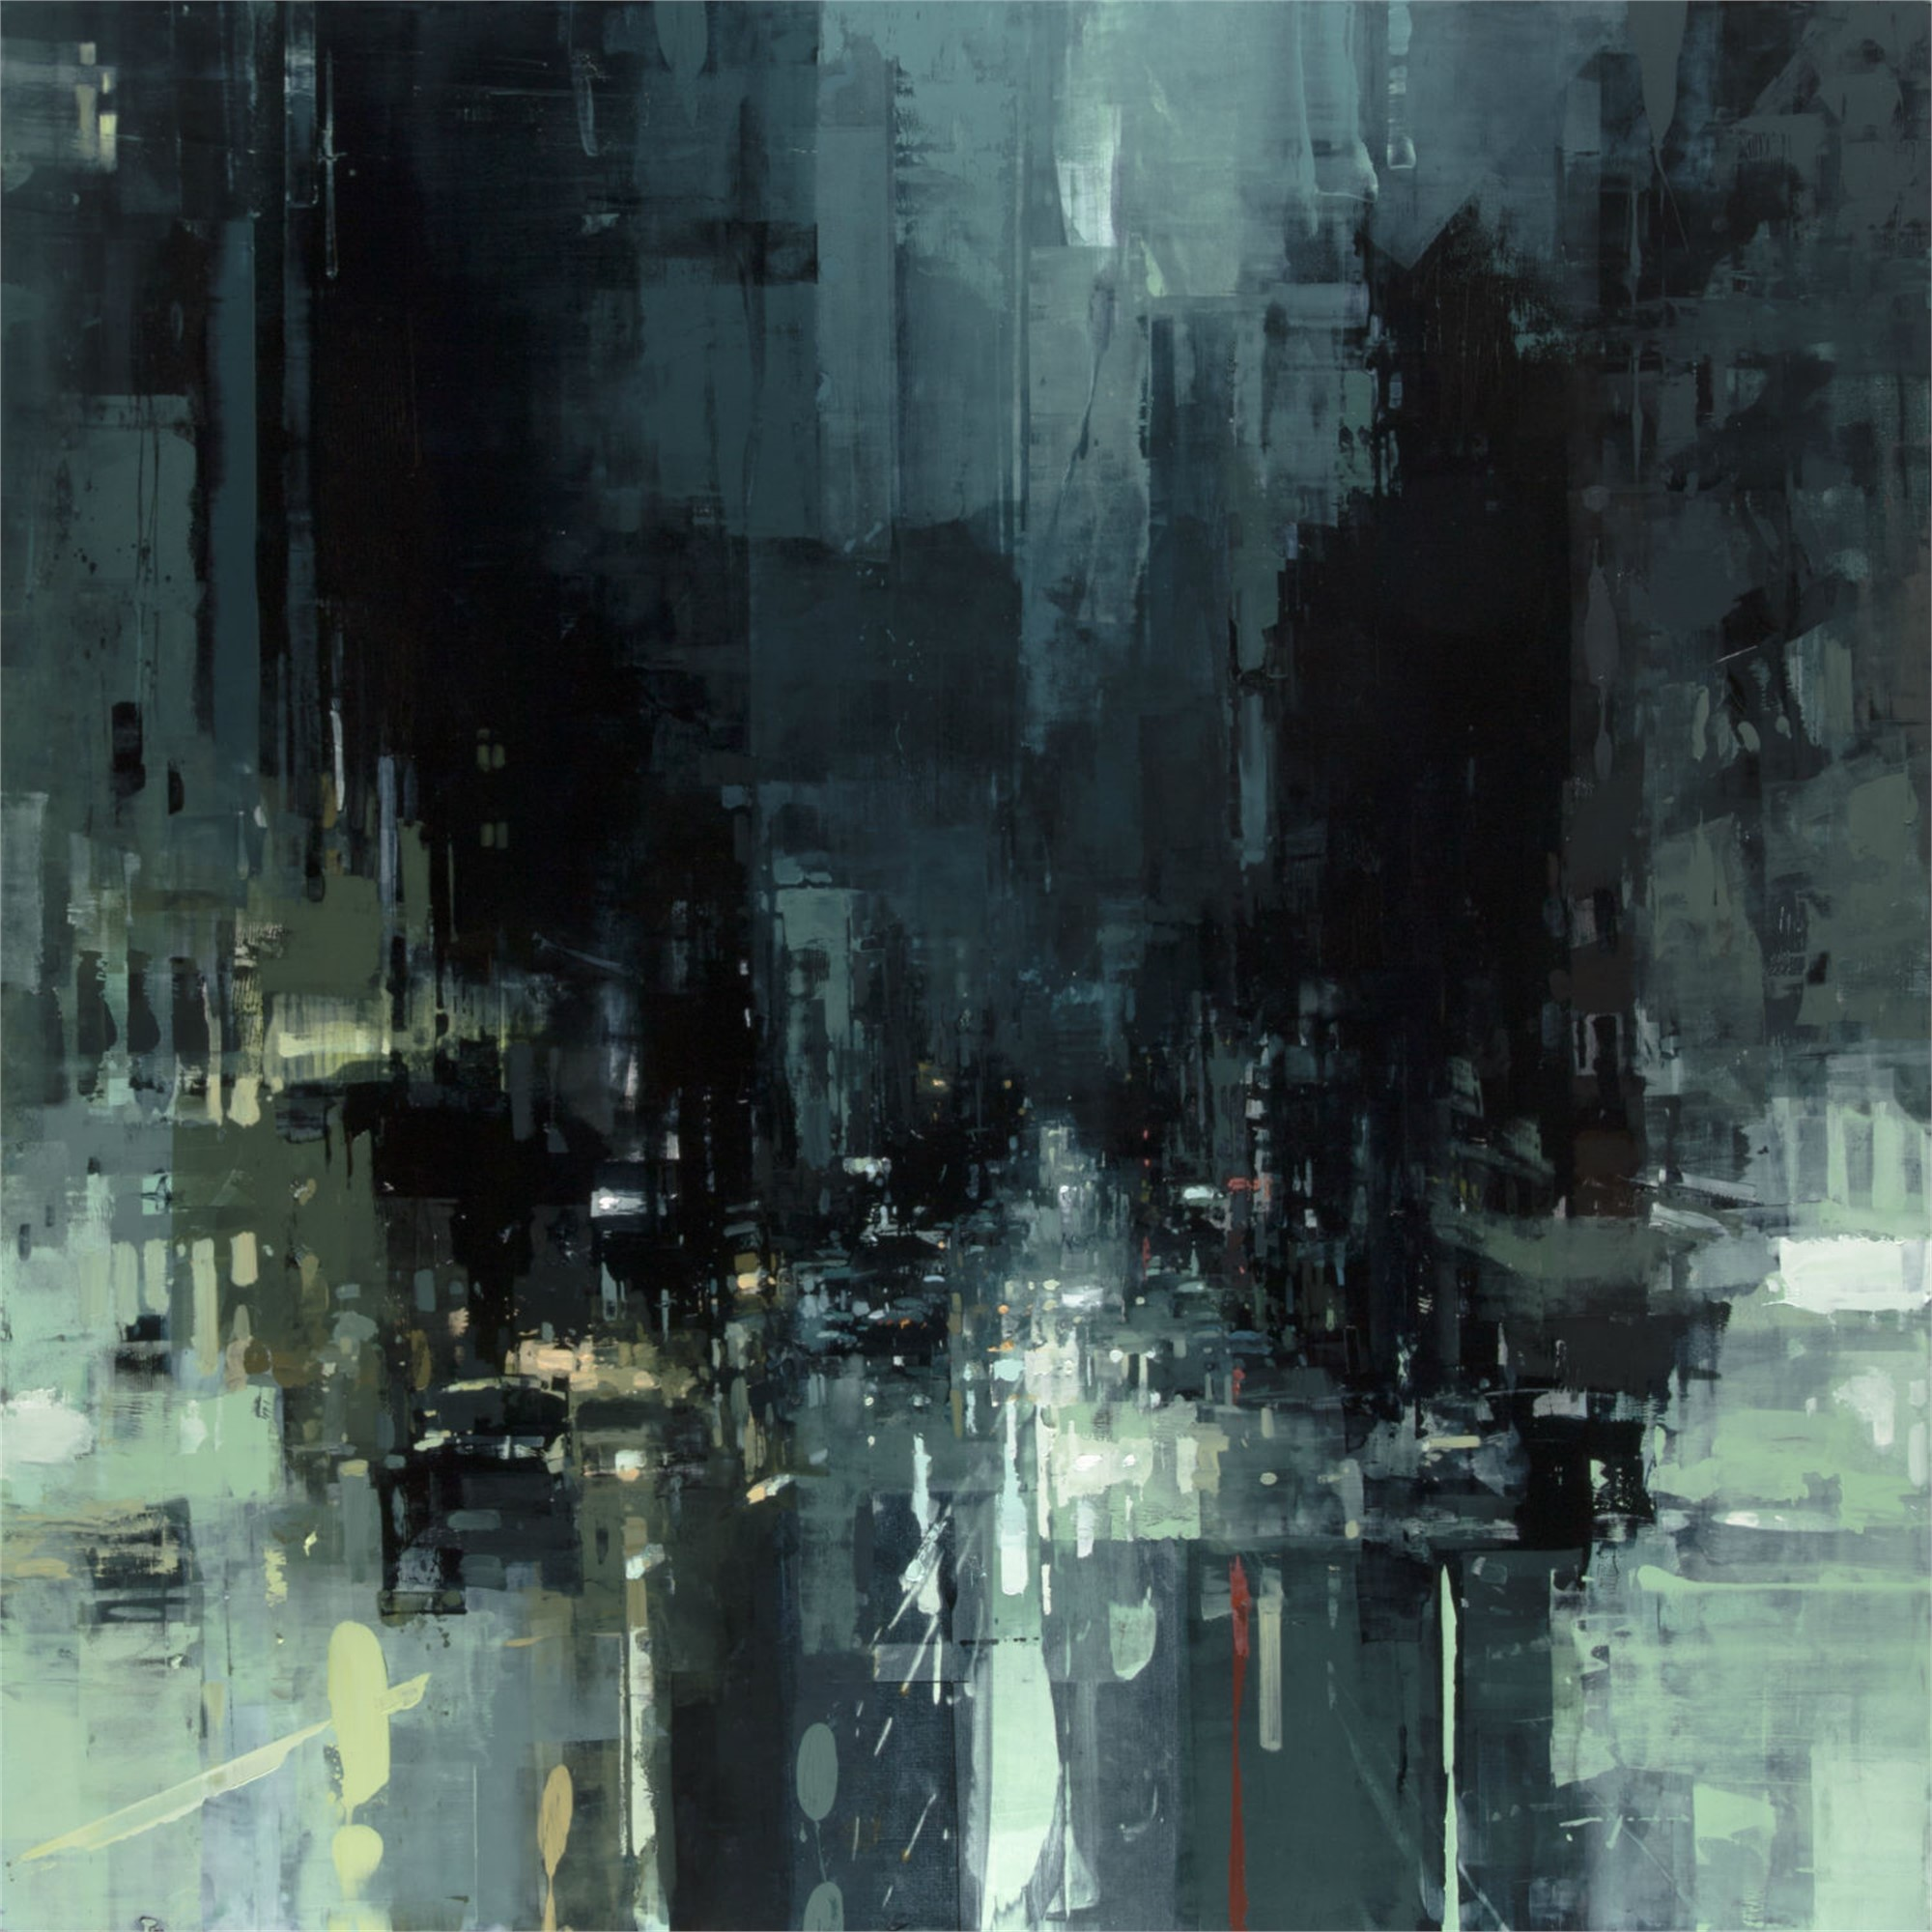 The Geary St Storm by Jeremy Mann